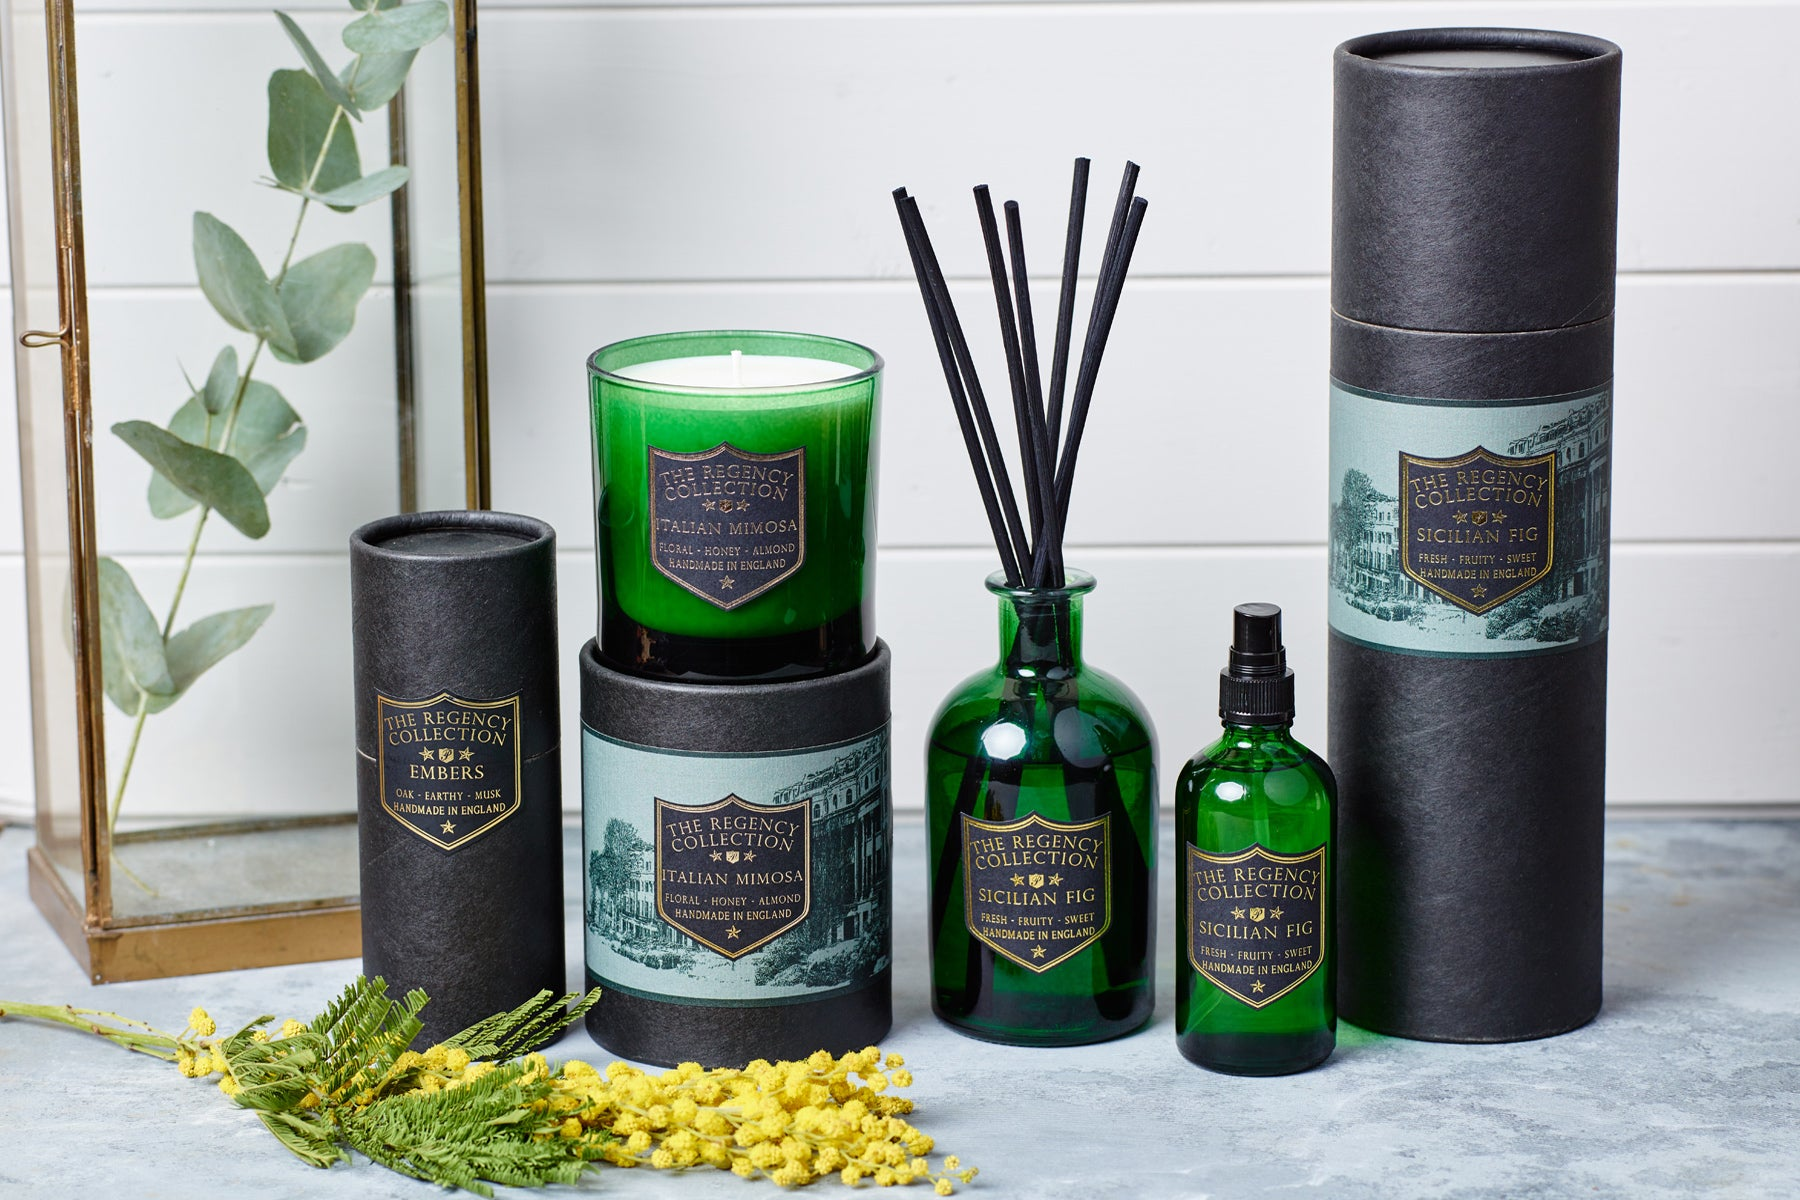 the Regency Collection by Parkminster - Scented Candles Room Sprays and Reed Diffusers